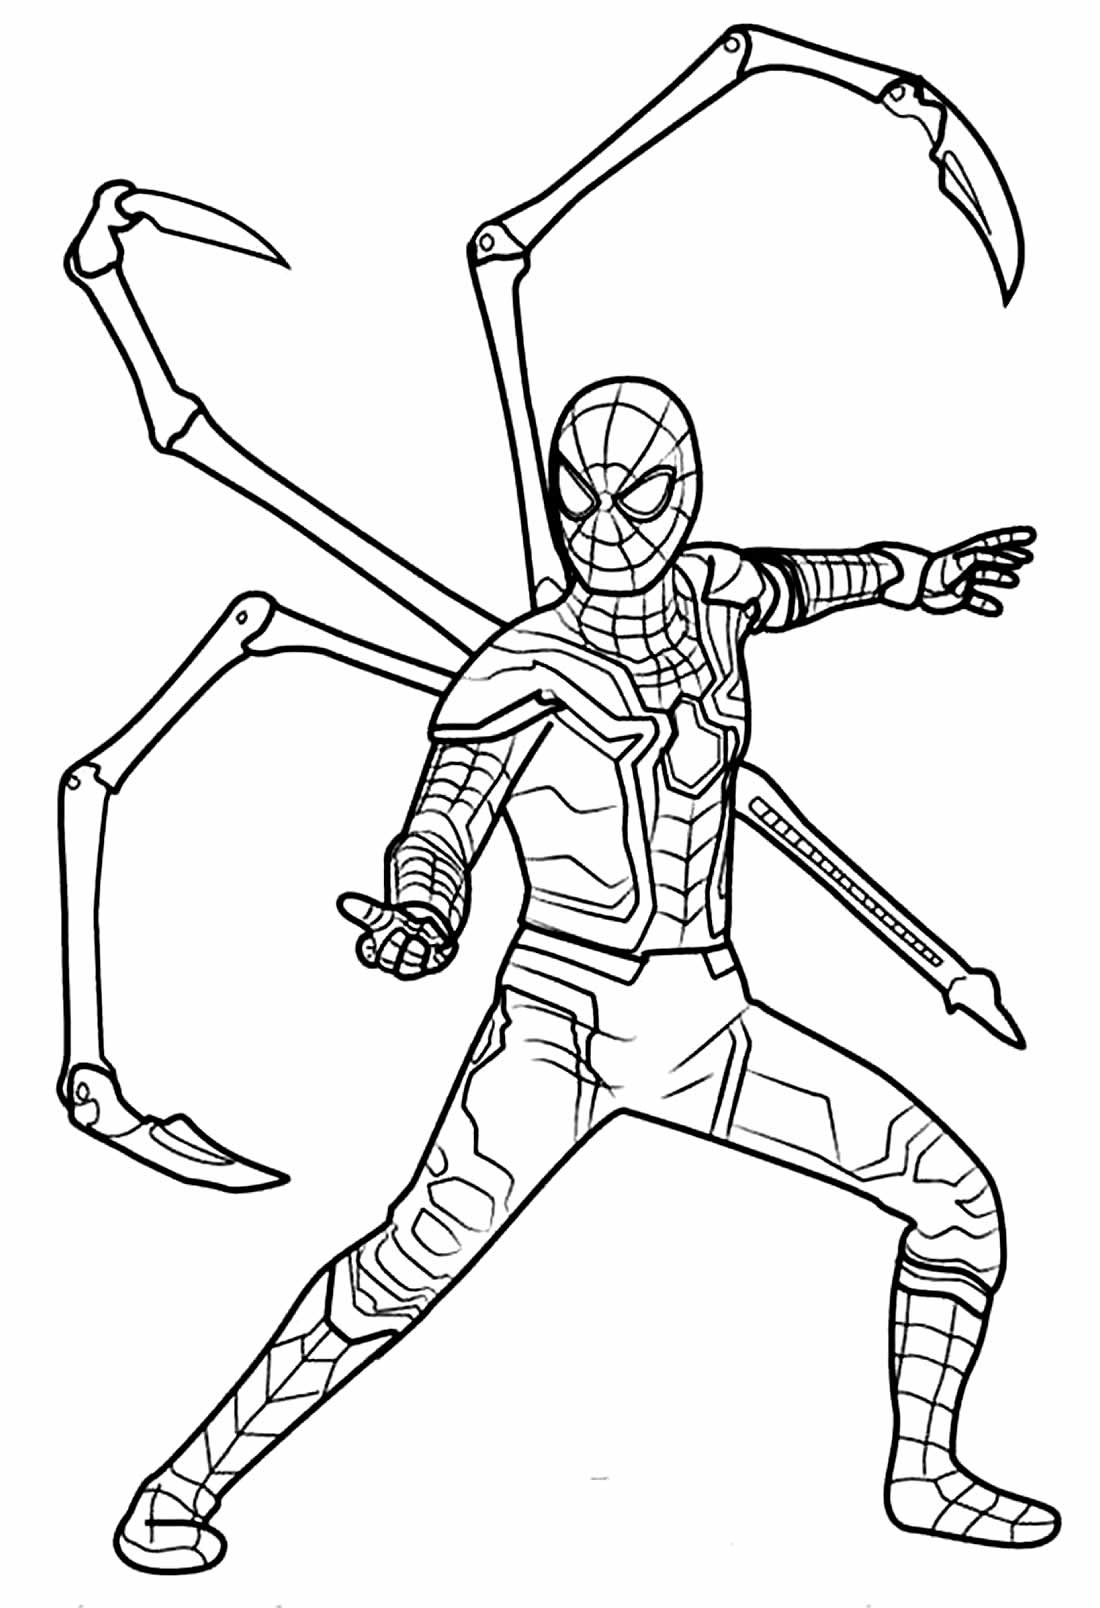 Coloriage de Spiderman